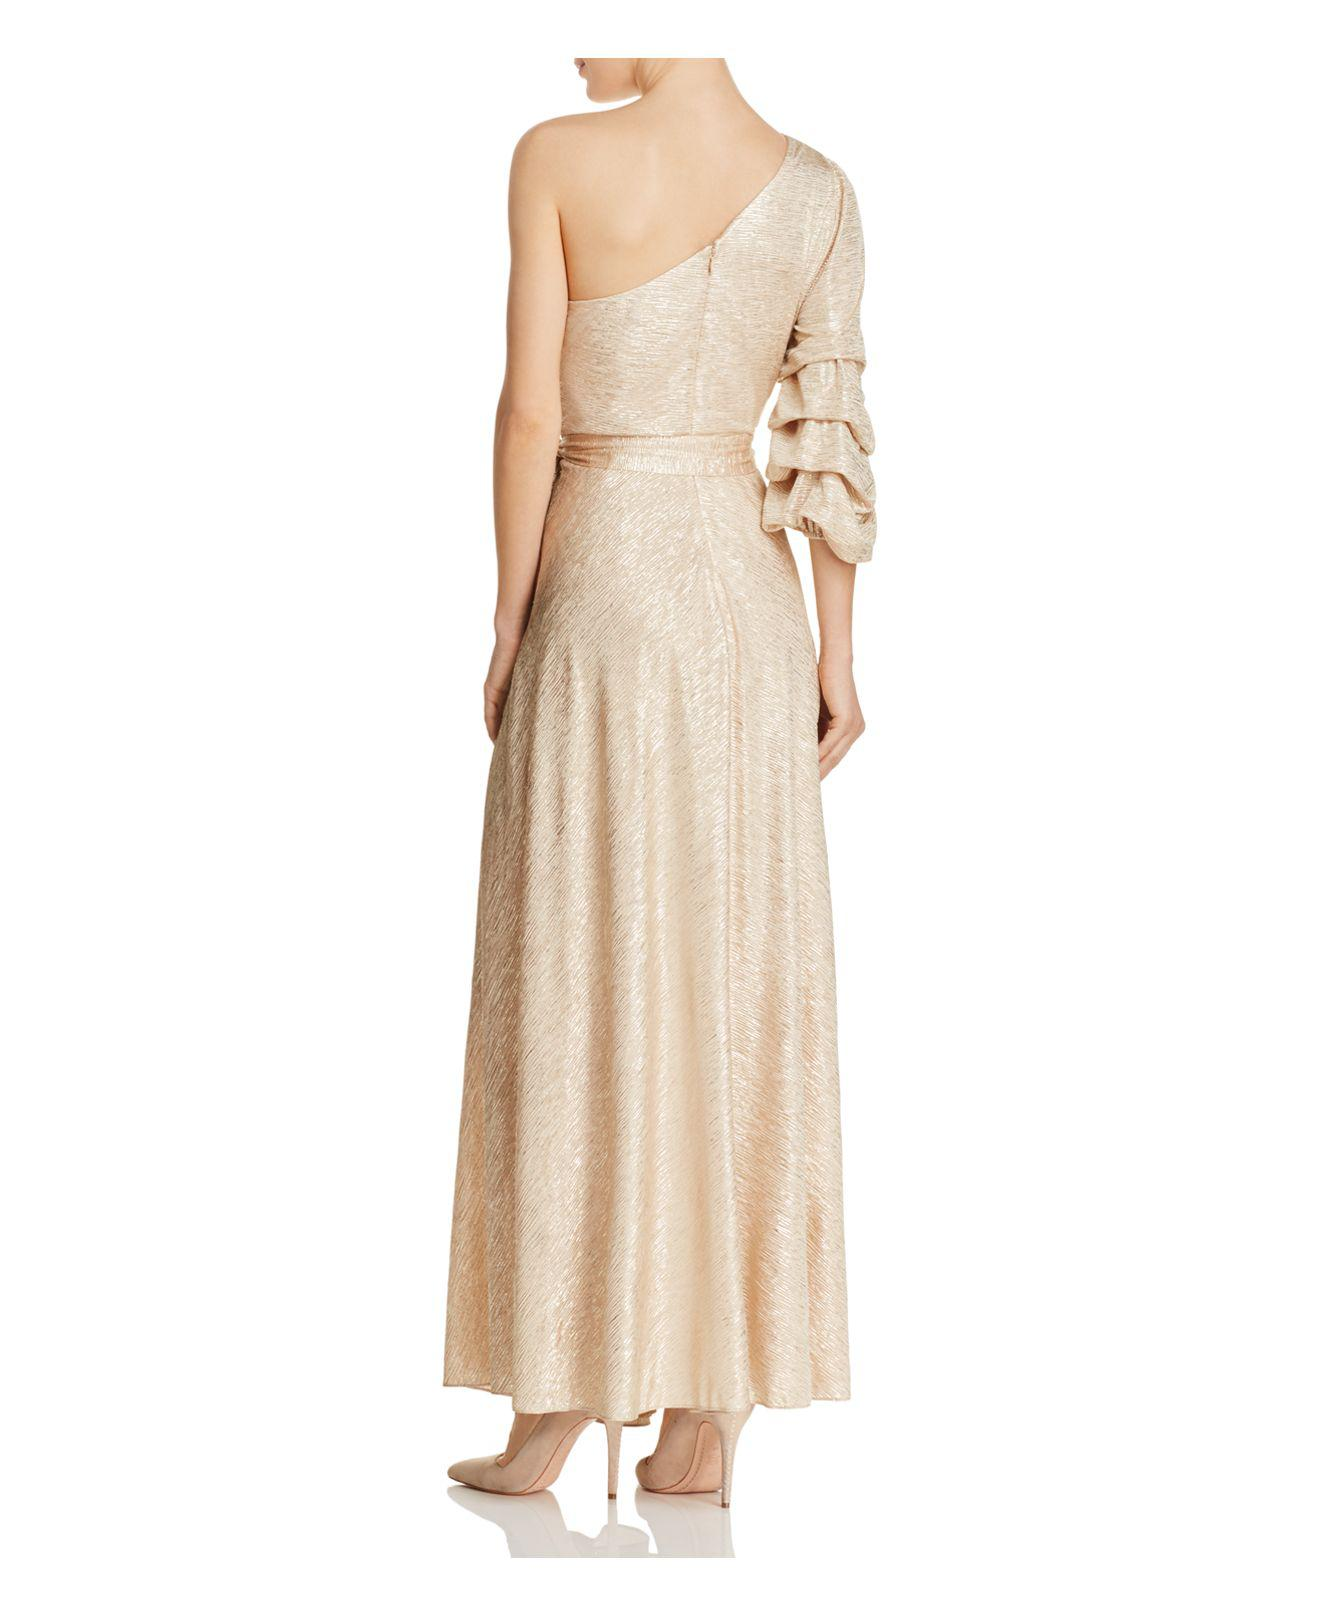 Jeanie long dress Alice & Olivia